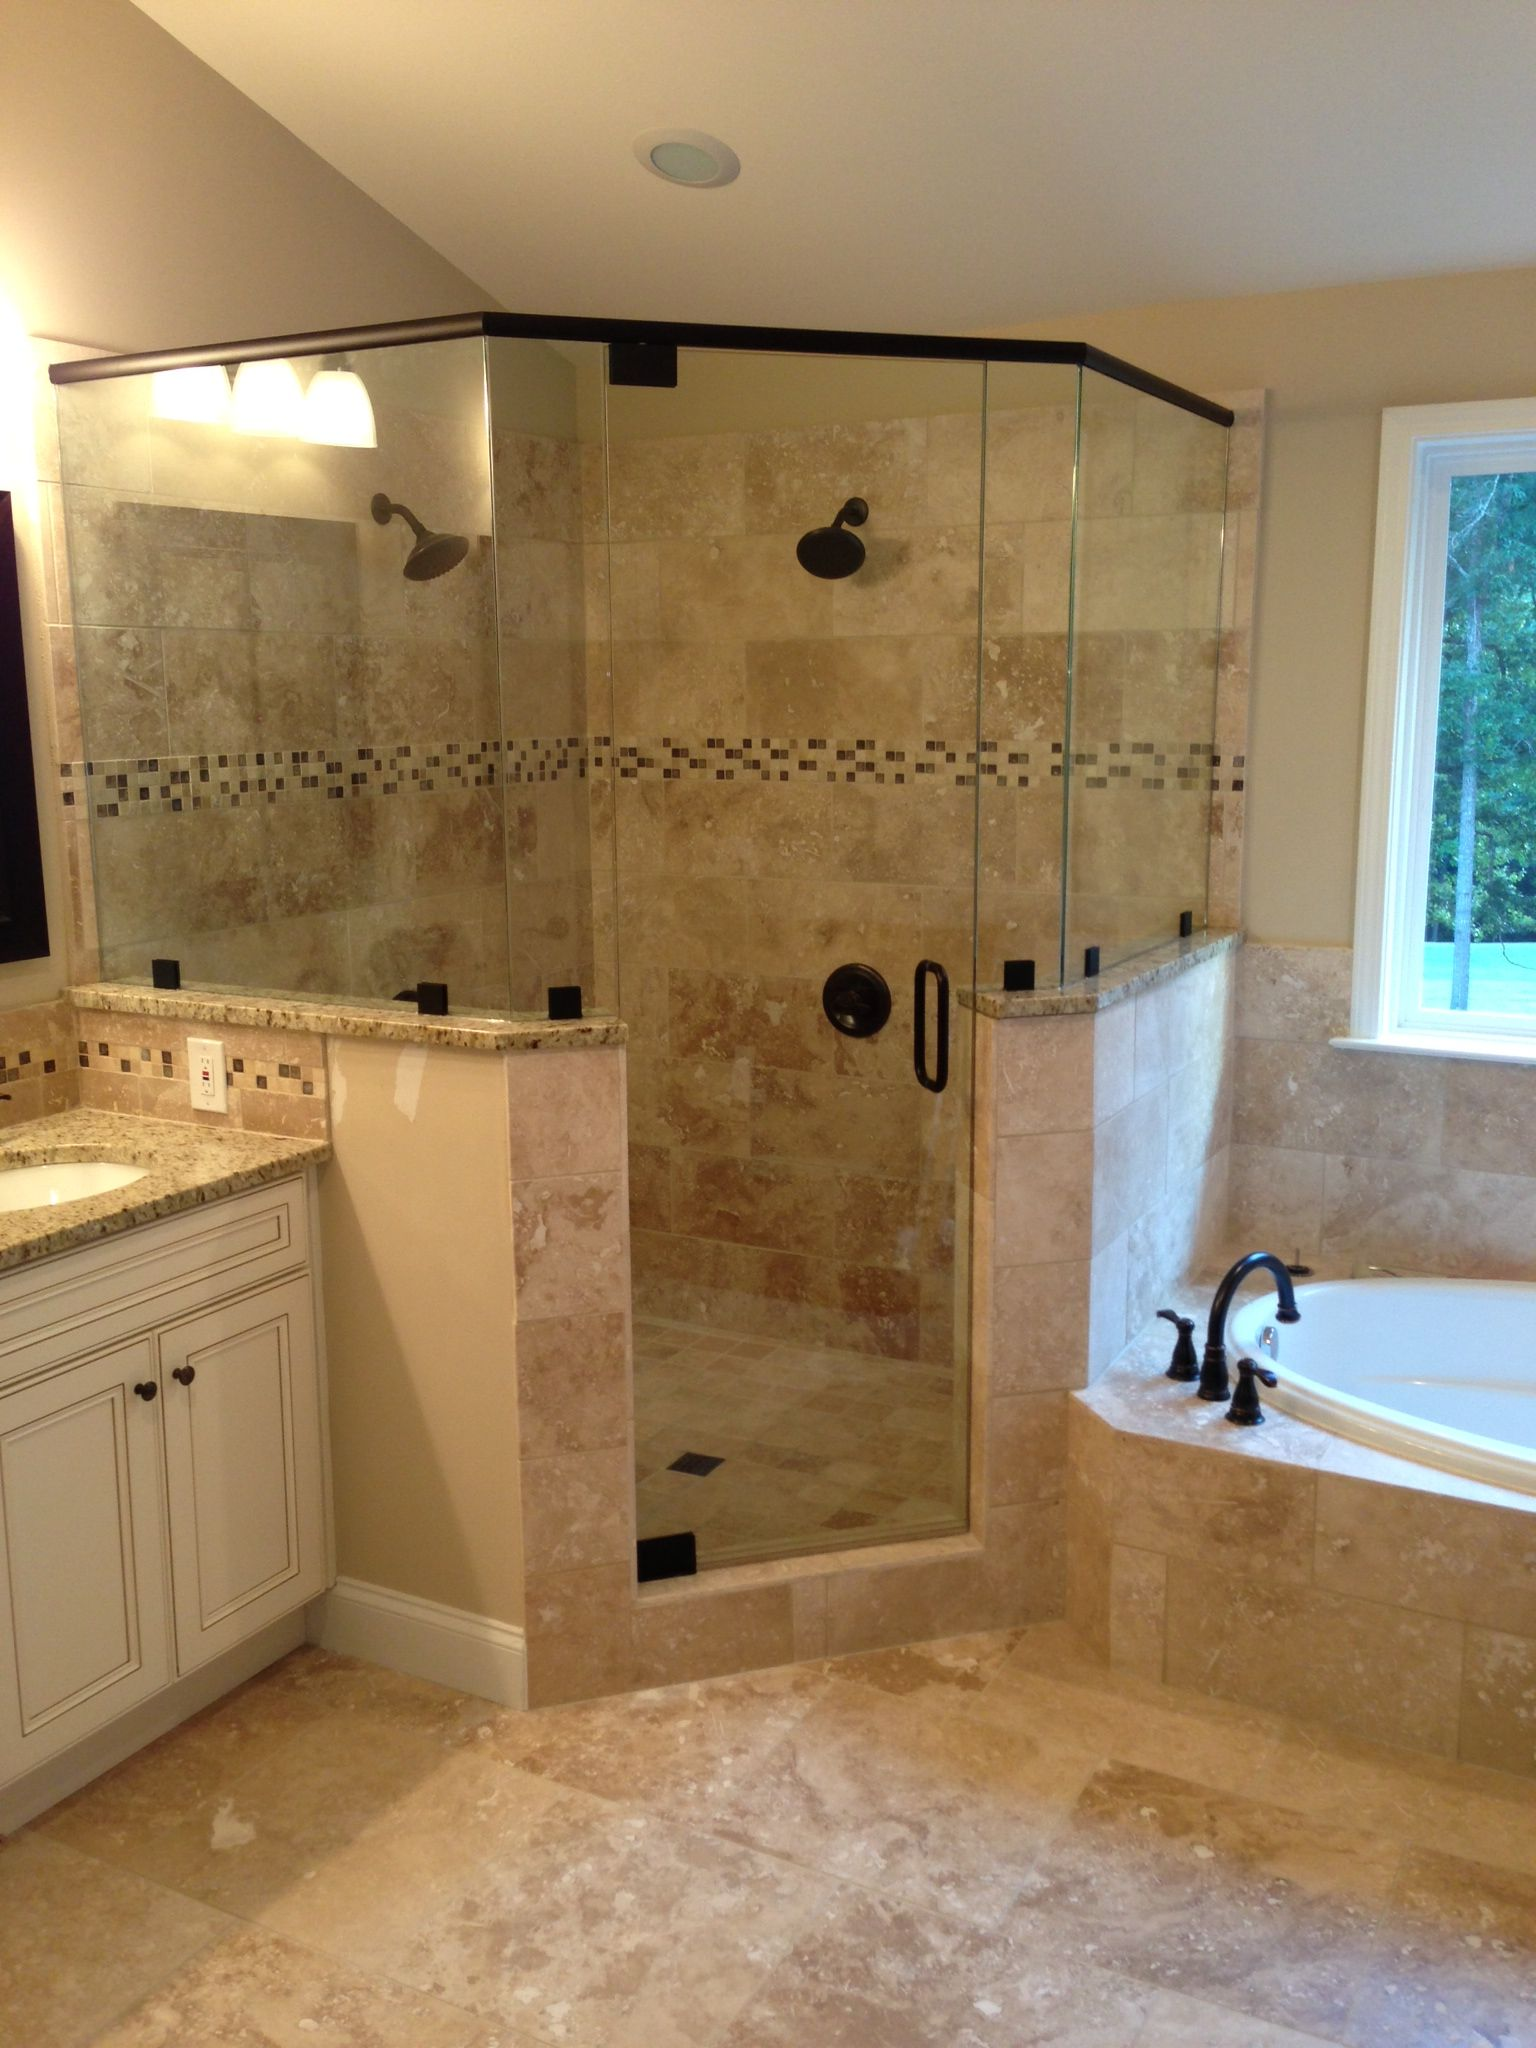 Frameless Corner Glass Shower Dual Shower Heads Garden Tub Tiled Shower Bathroom Remodel